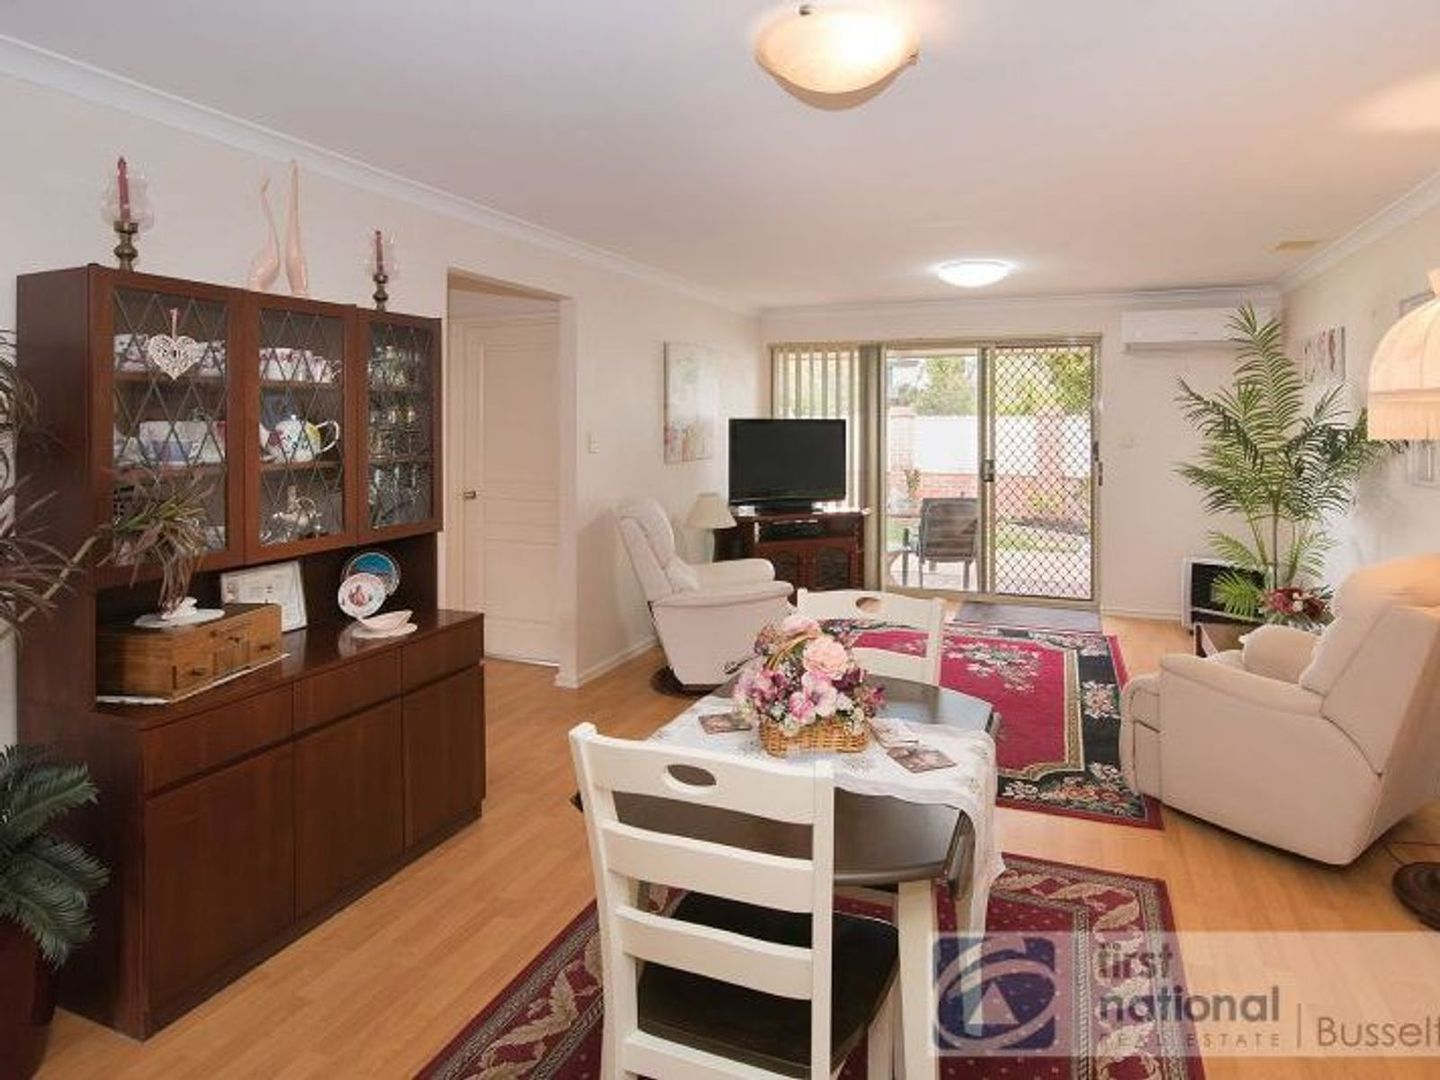 6/78 Ford Road, Busselton WA 6280, Image 2